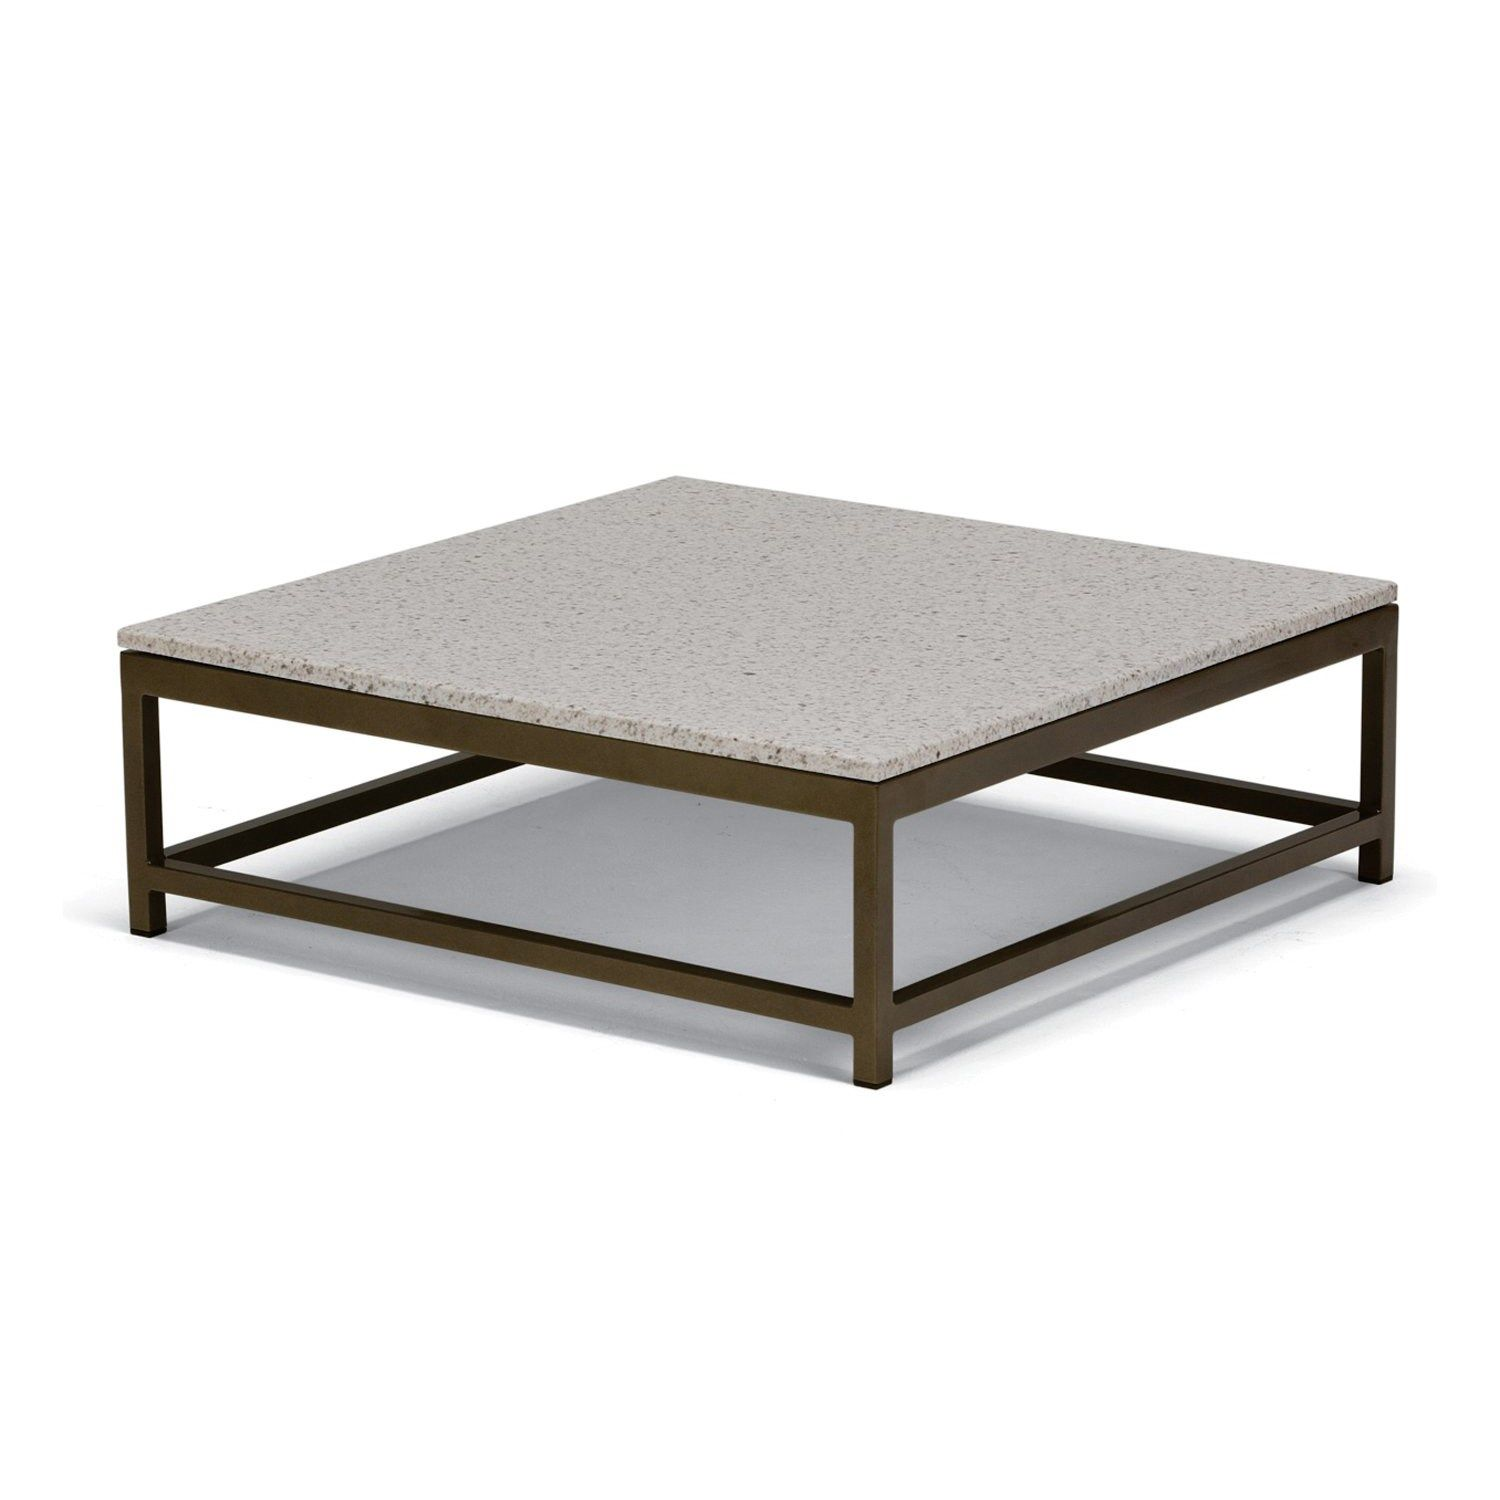 "Tropitone B Cabana Club 34"" Square Stone Top Coffee Table"